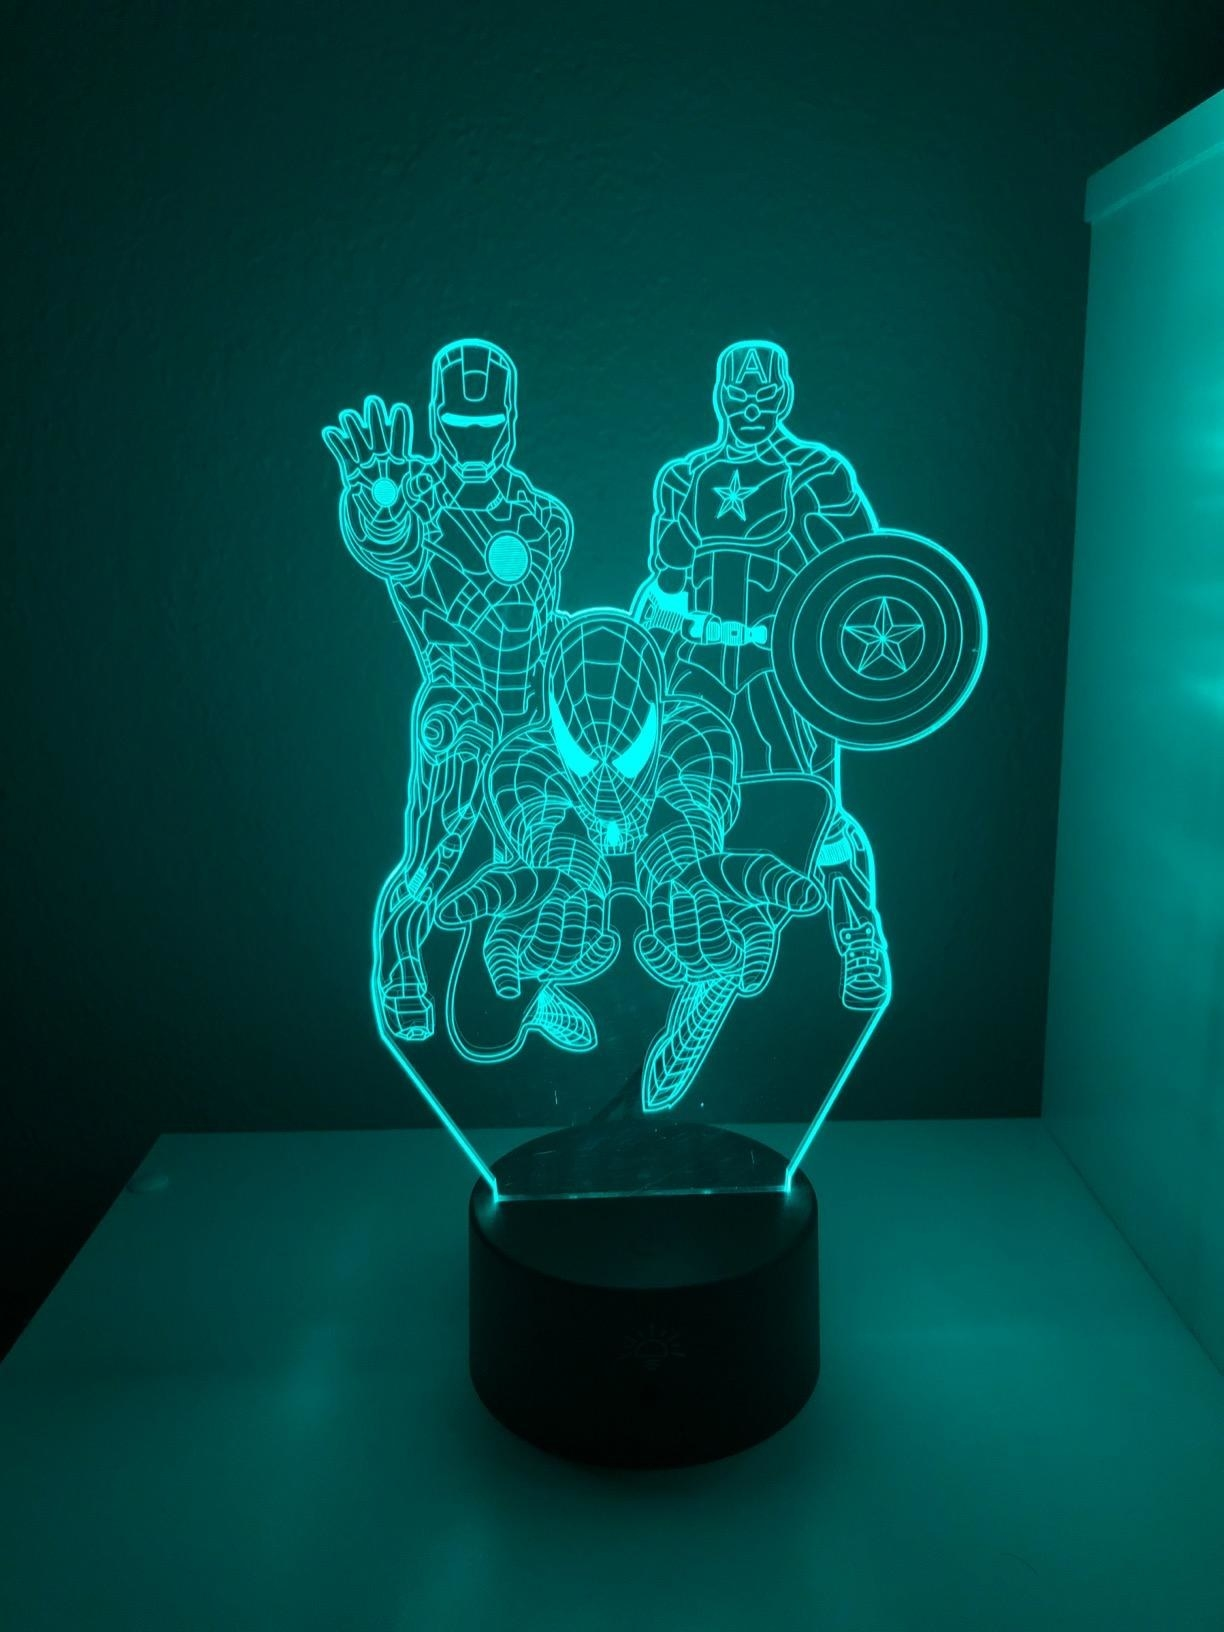 Reviewer's photo of the lamp projecting the illusion ofSpiderman, Ironman and Captain America